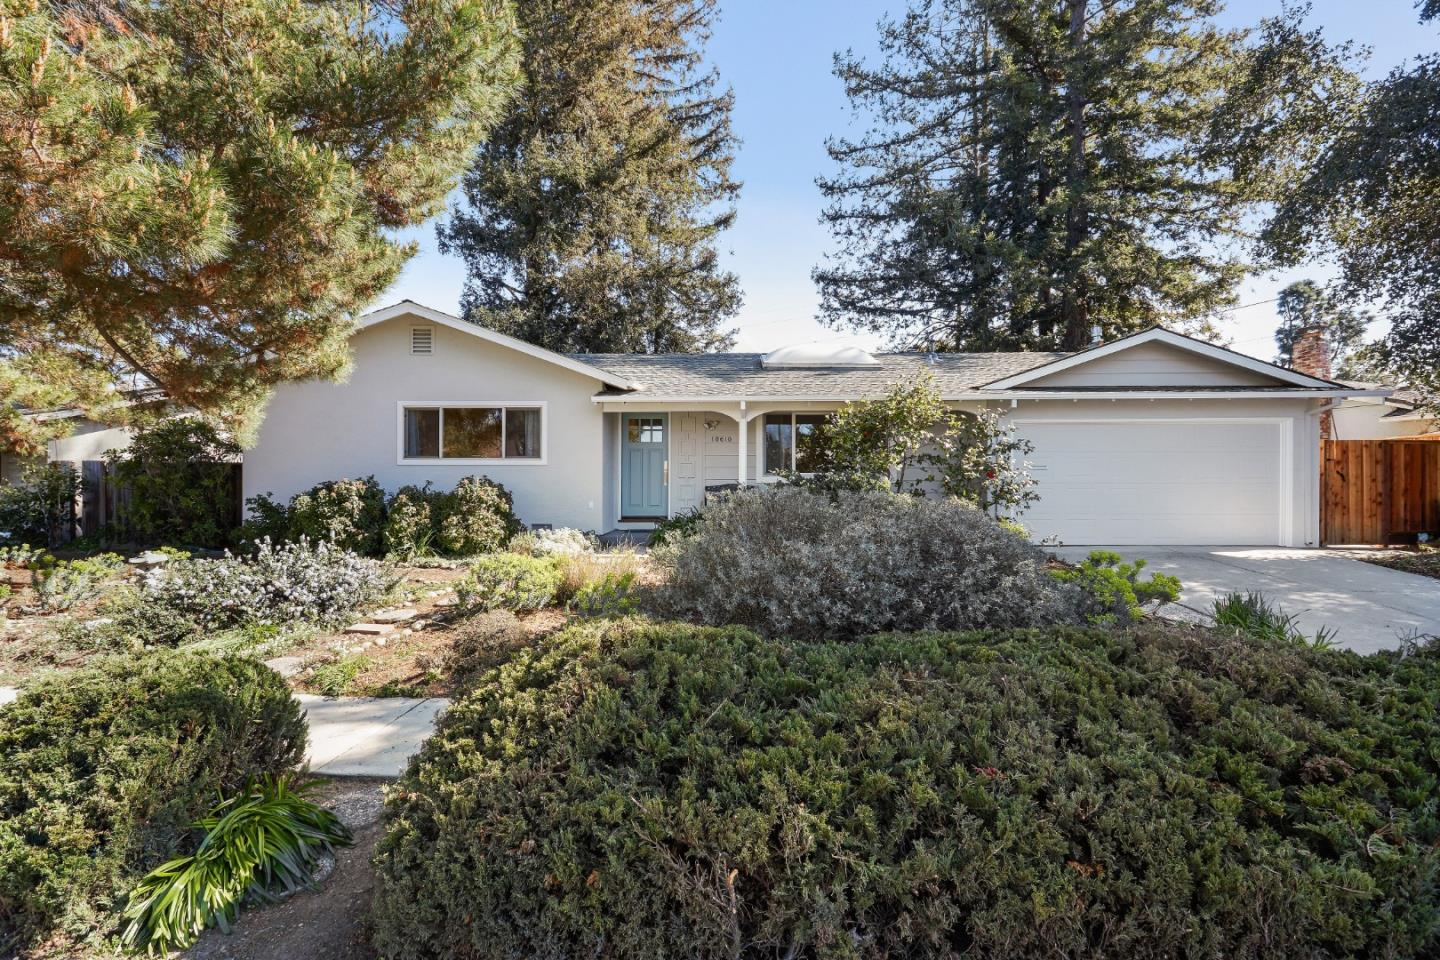 10610 E ESTATES DR, CUPERTINO, CA 95014